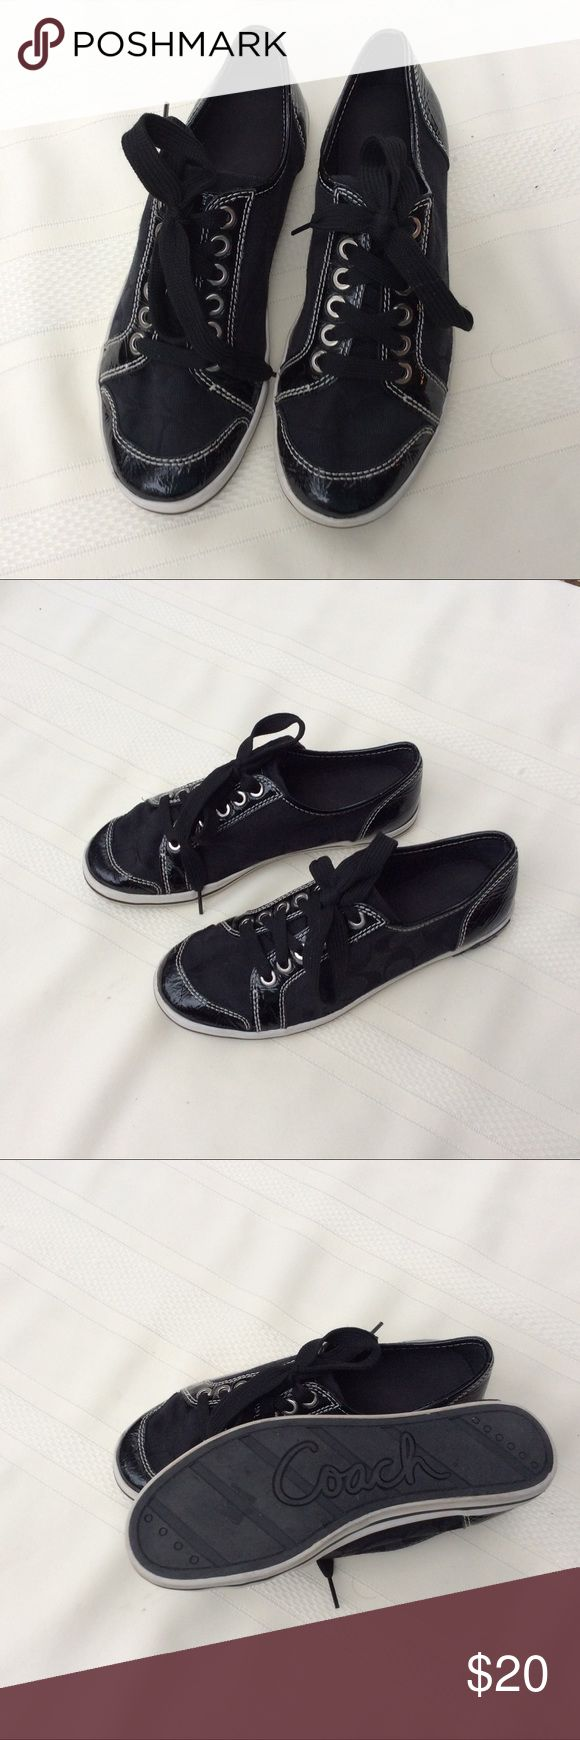 W.Once coach sneakers. Excellent condition Coach sneakers. No signs of ware. Coach Shoes Sneakers